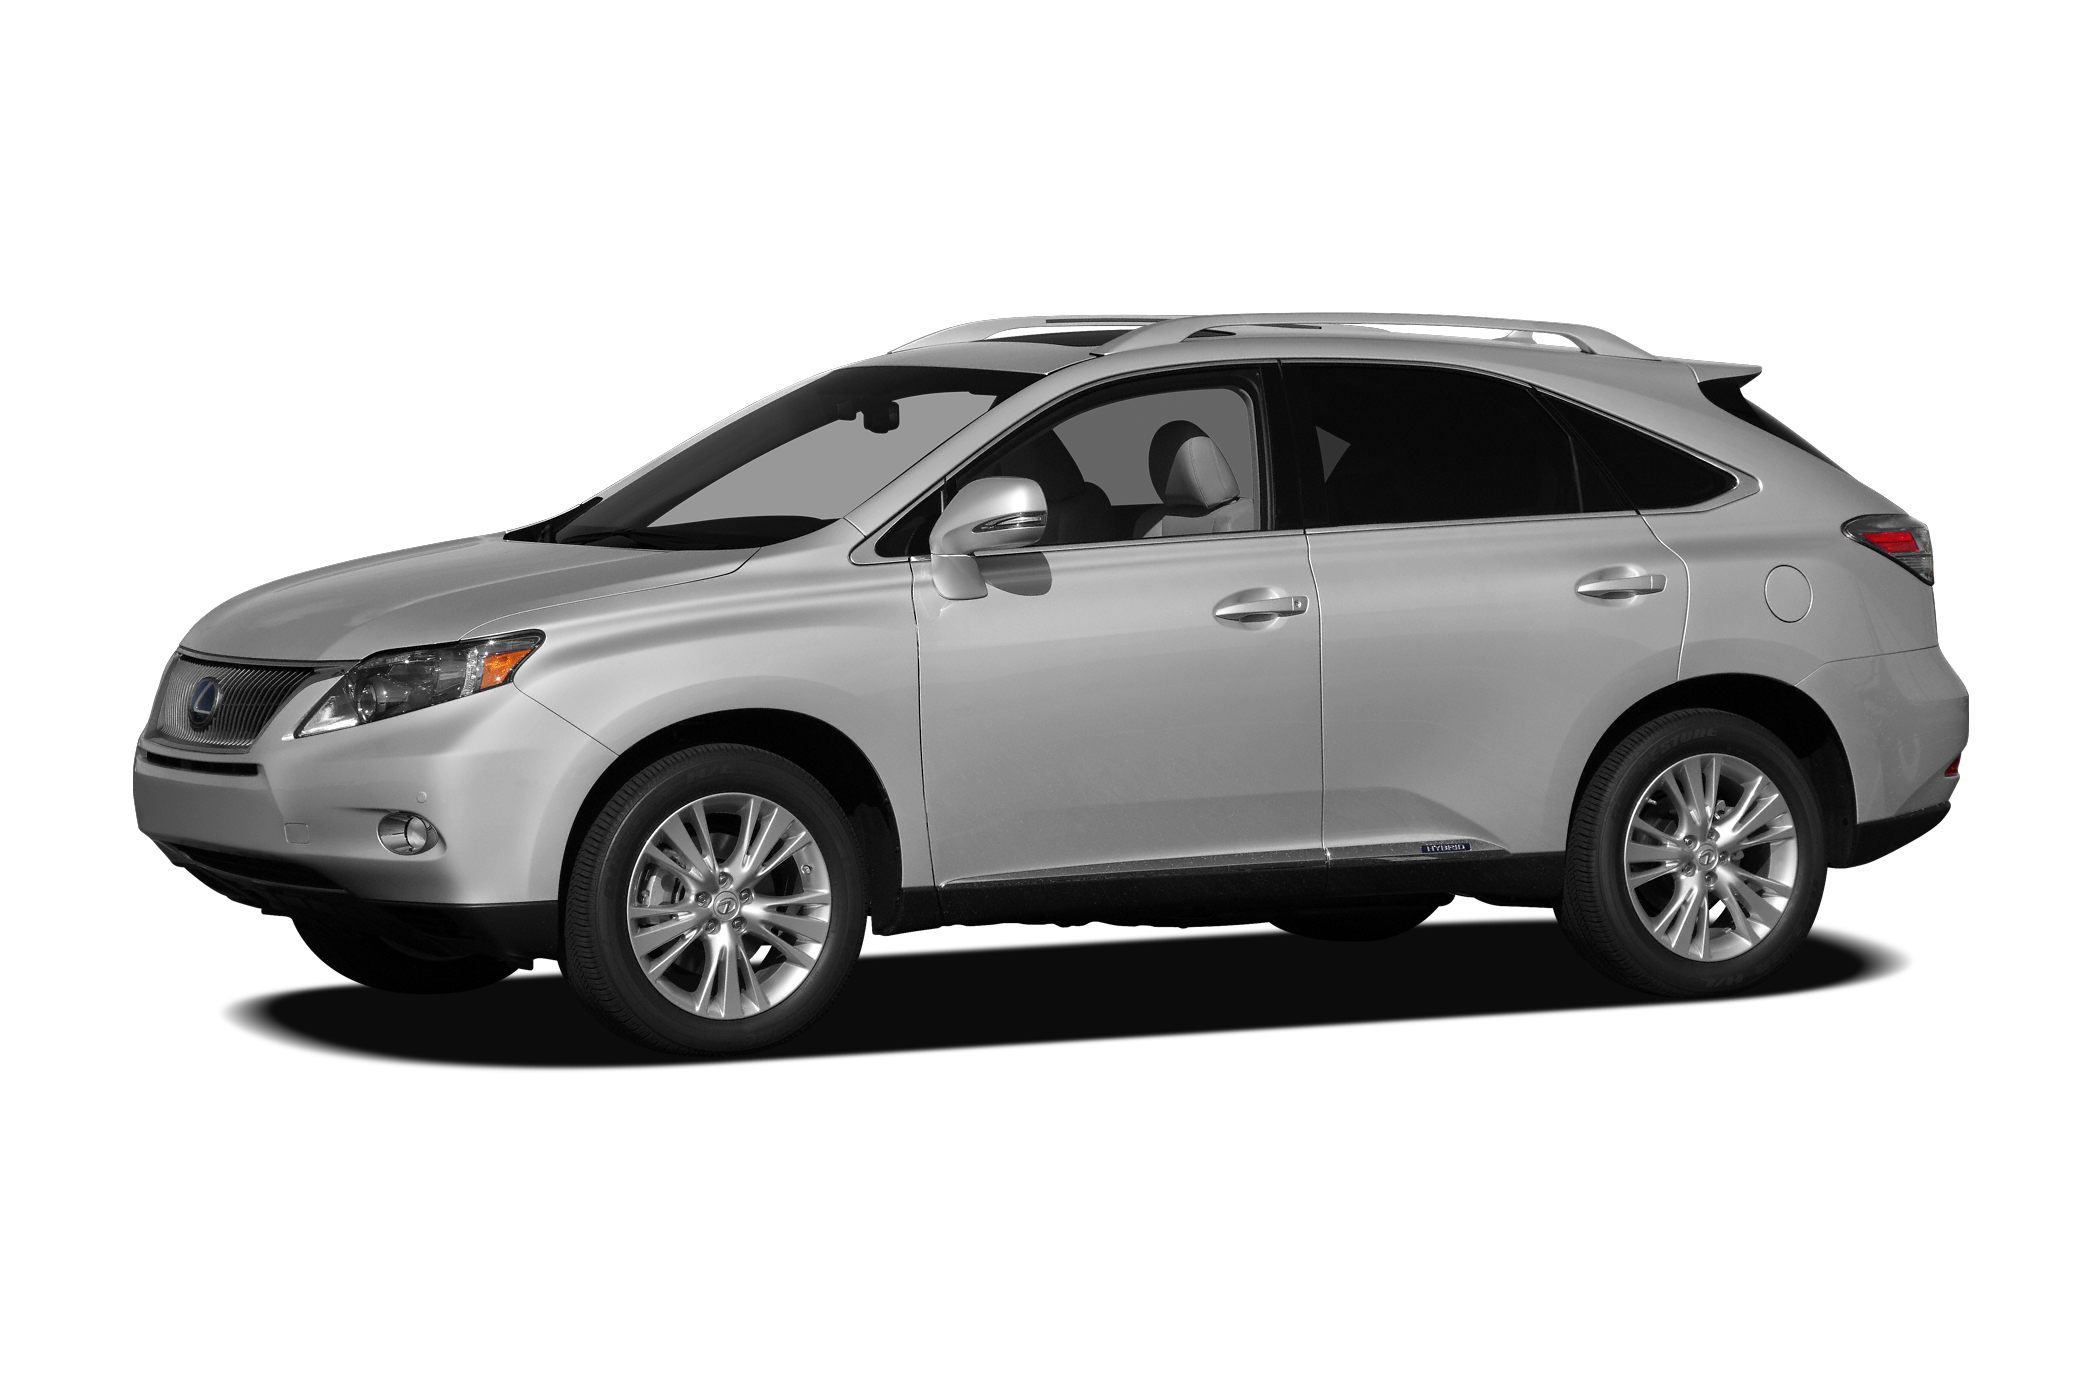 2011 Lexus RX 450h Base SUV for sale in Santa Rosa for $35,975 with 47,027 miles